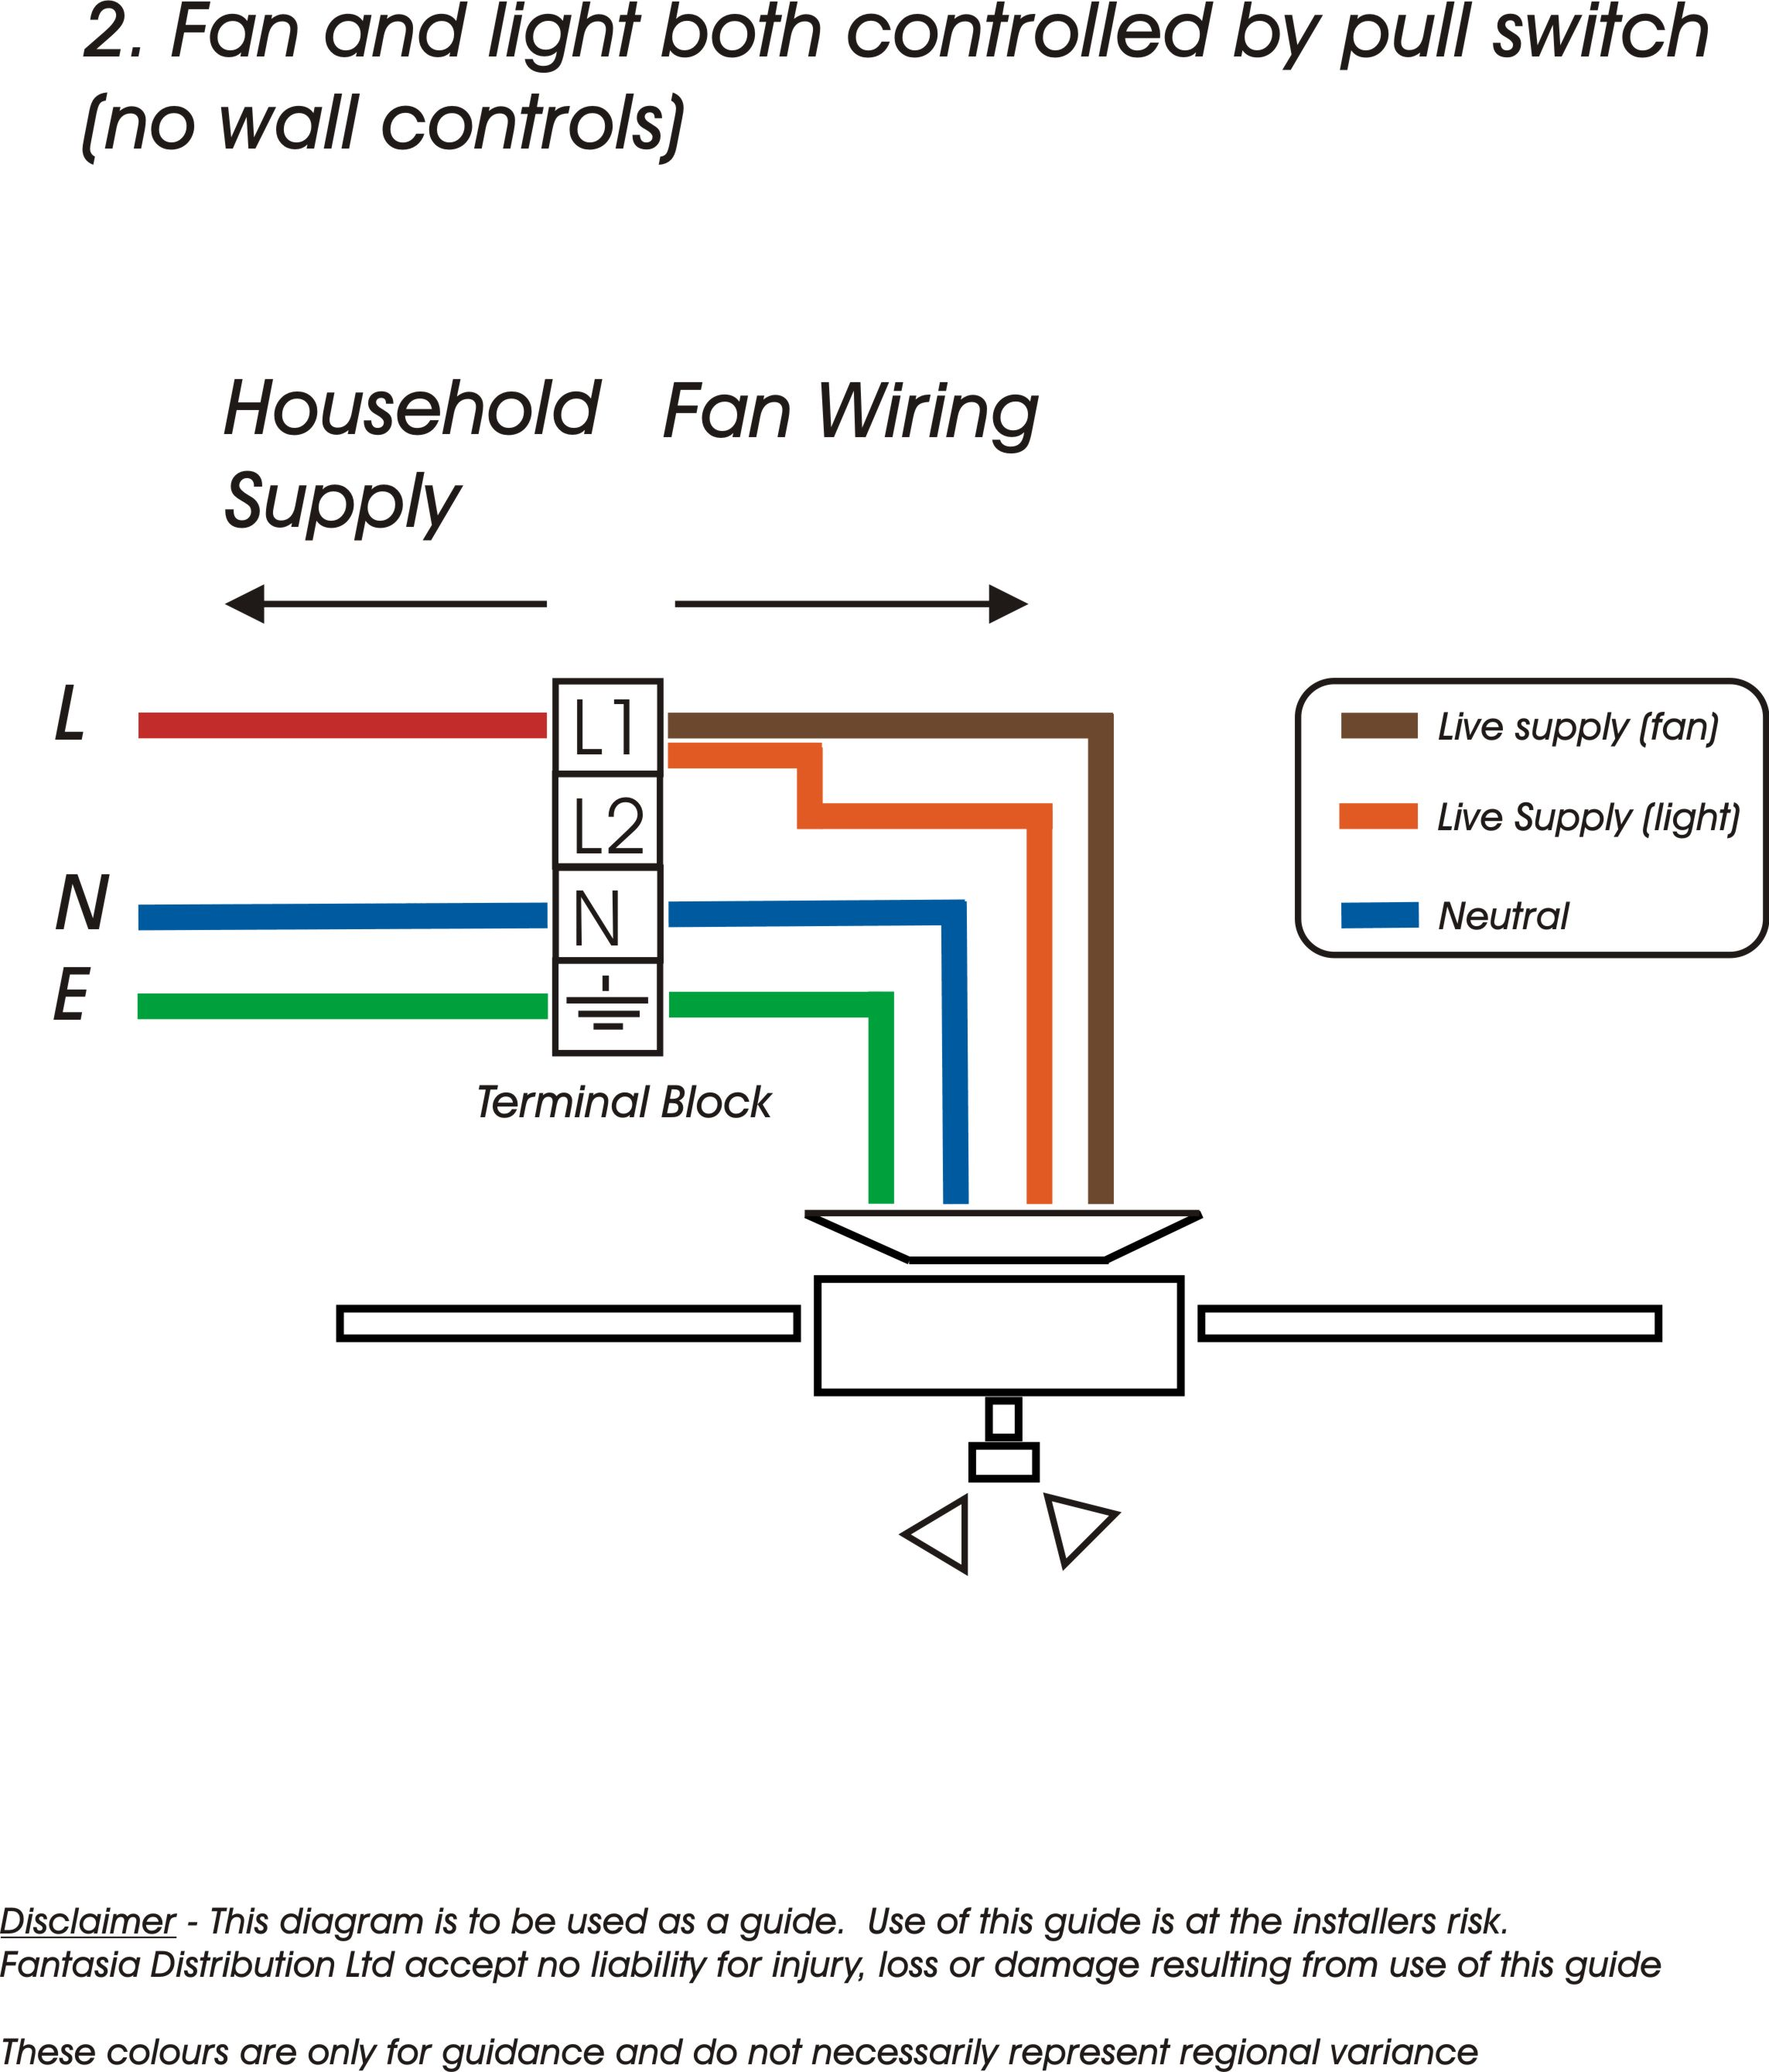 wiring ceiling fans 2 hampton bay ceiling fan motor wiring diagram integralbook com hunter ceiling fan remote wiring at bakdesigns.co